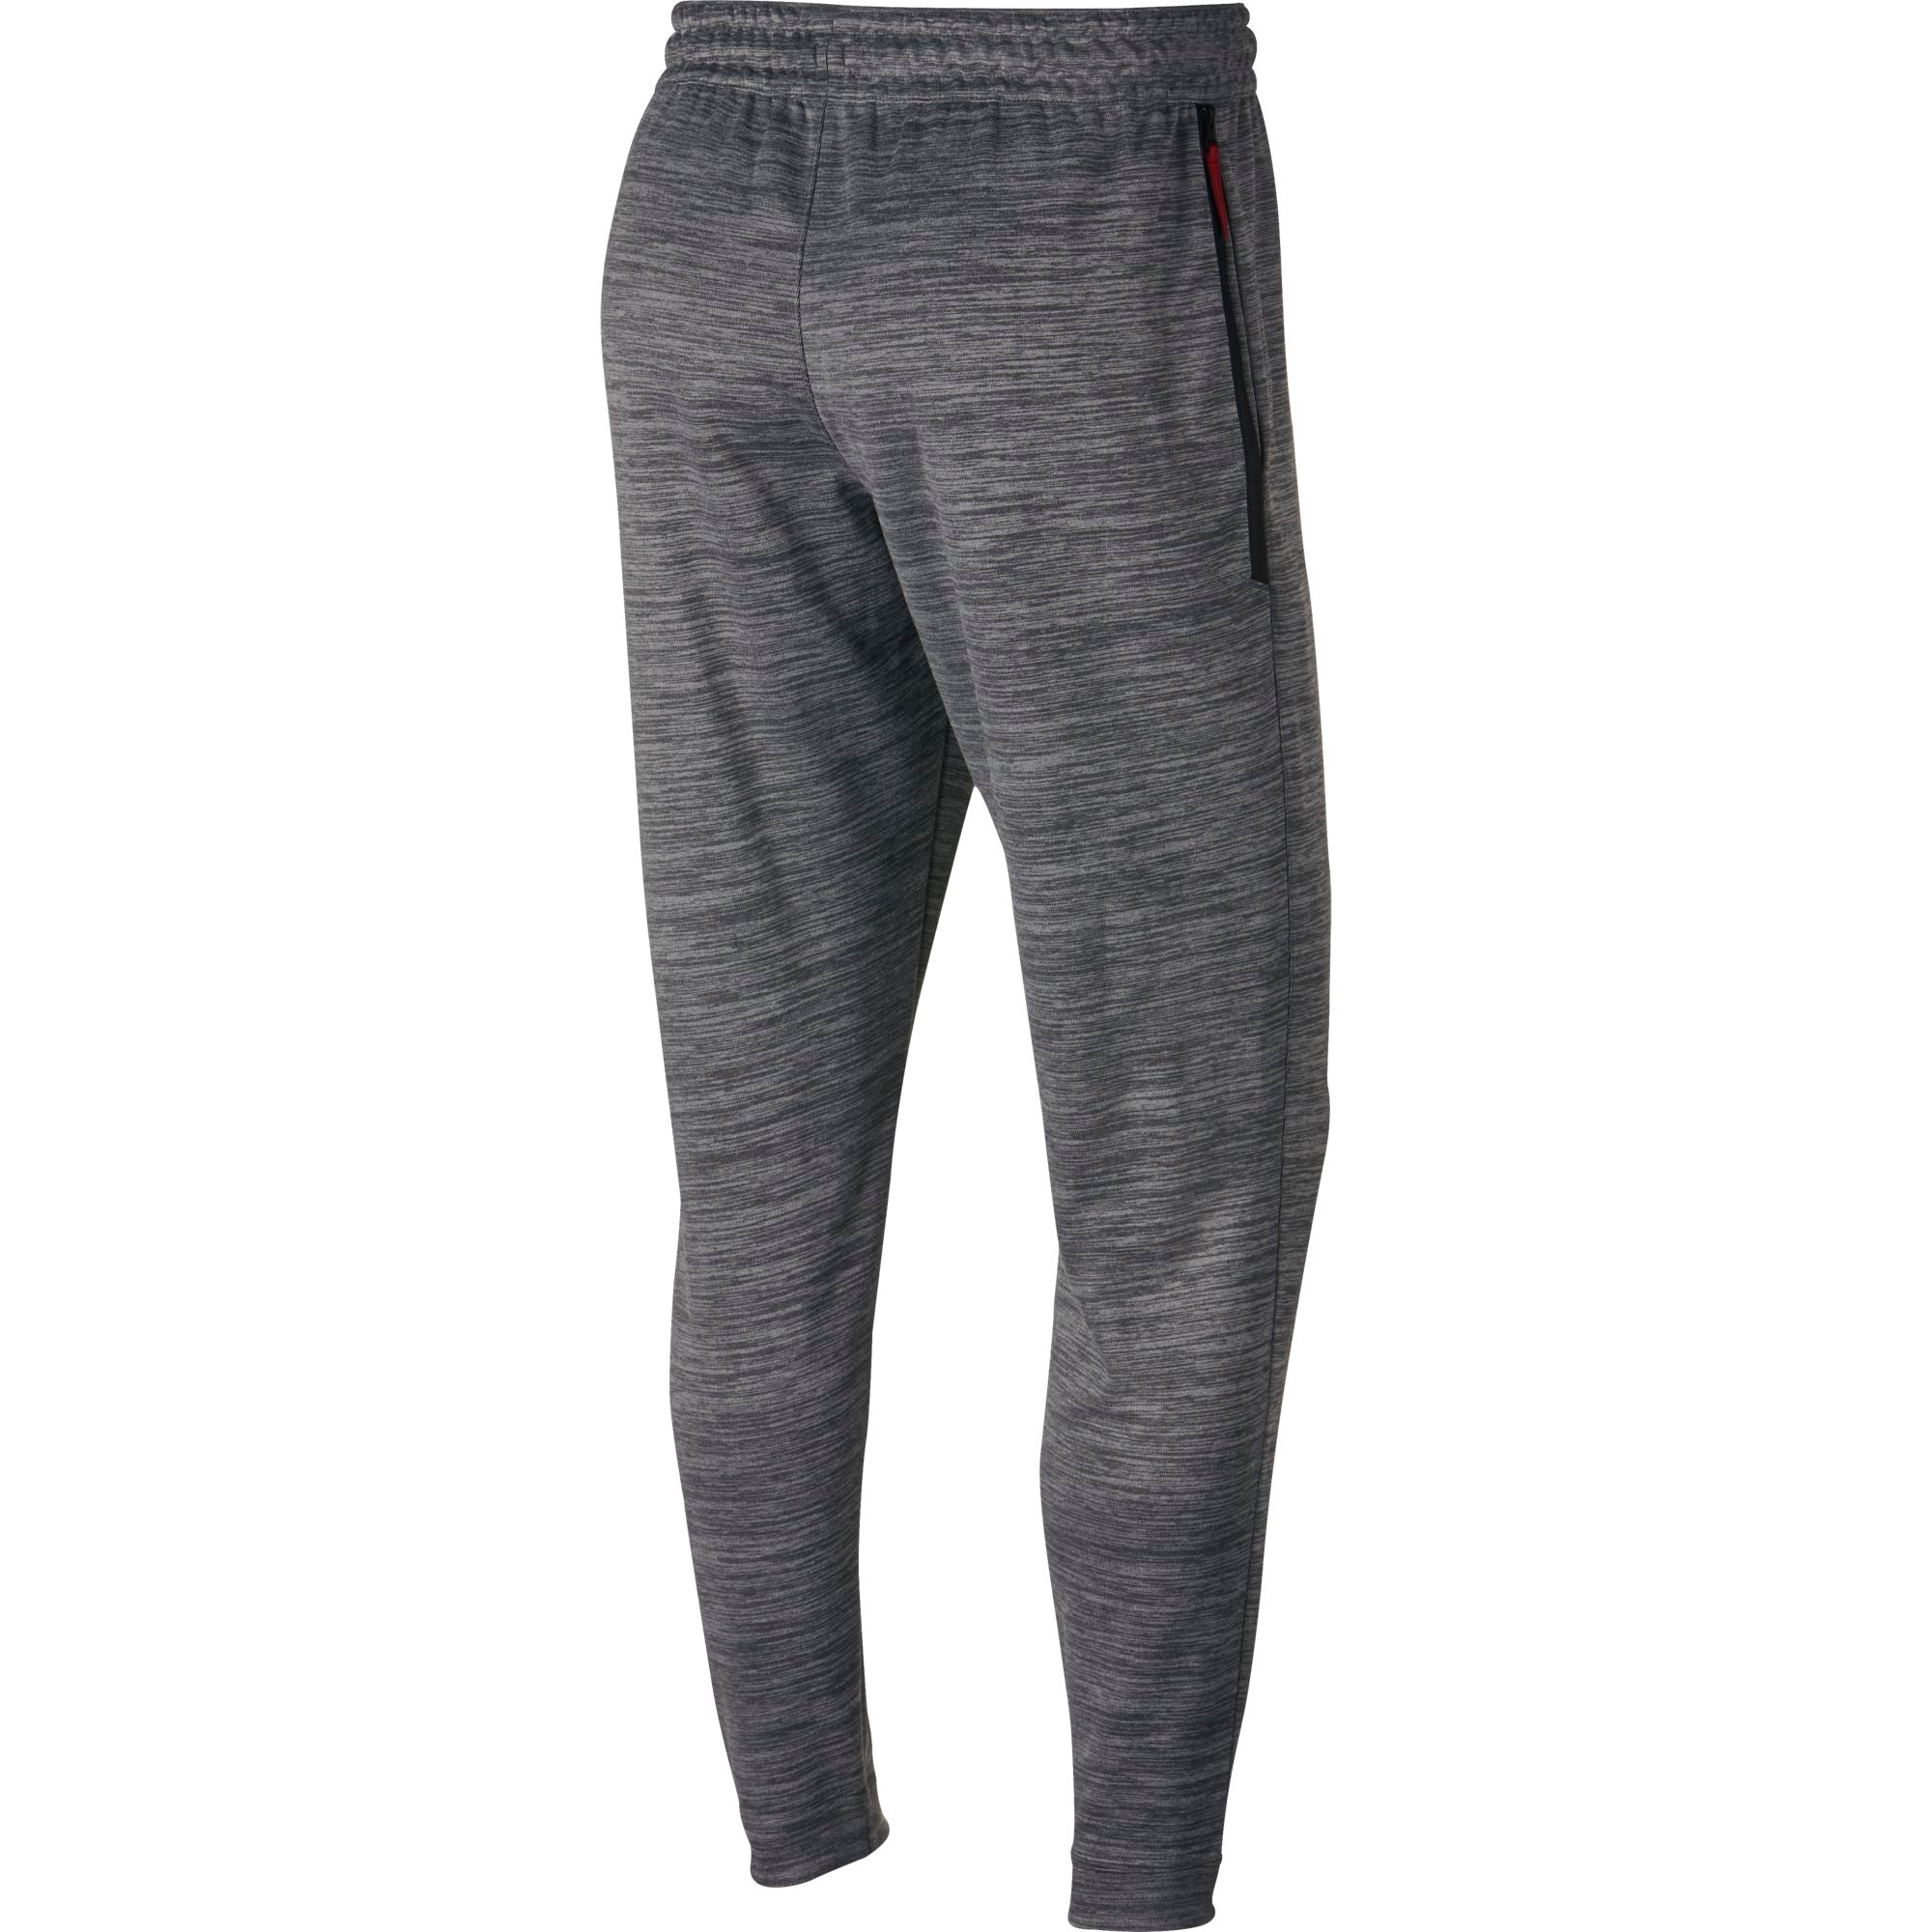 Nike Basketball Spotlight Tapered Pants - Grey Heather/Black